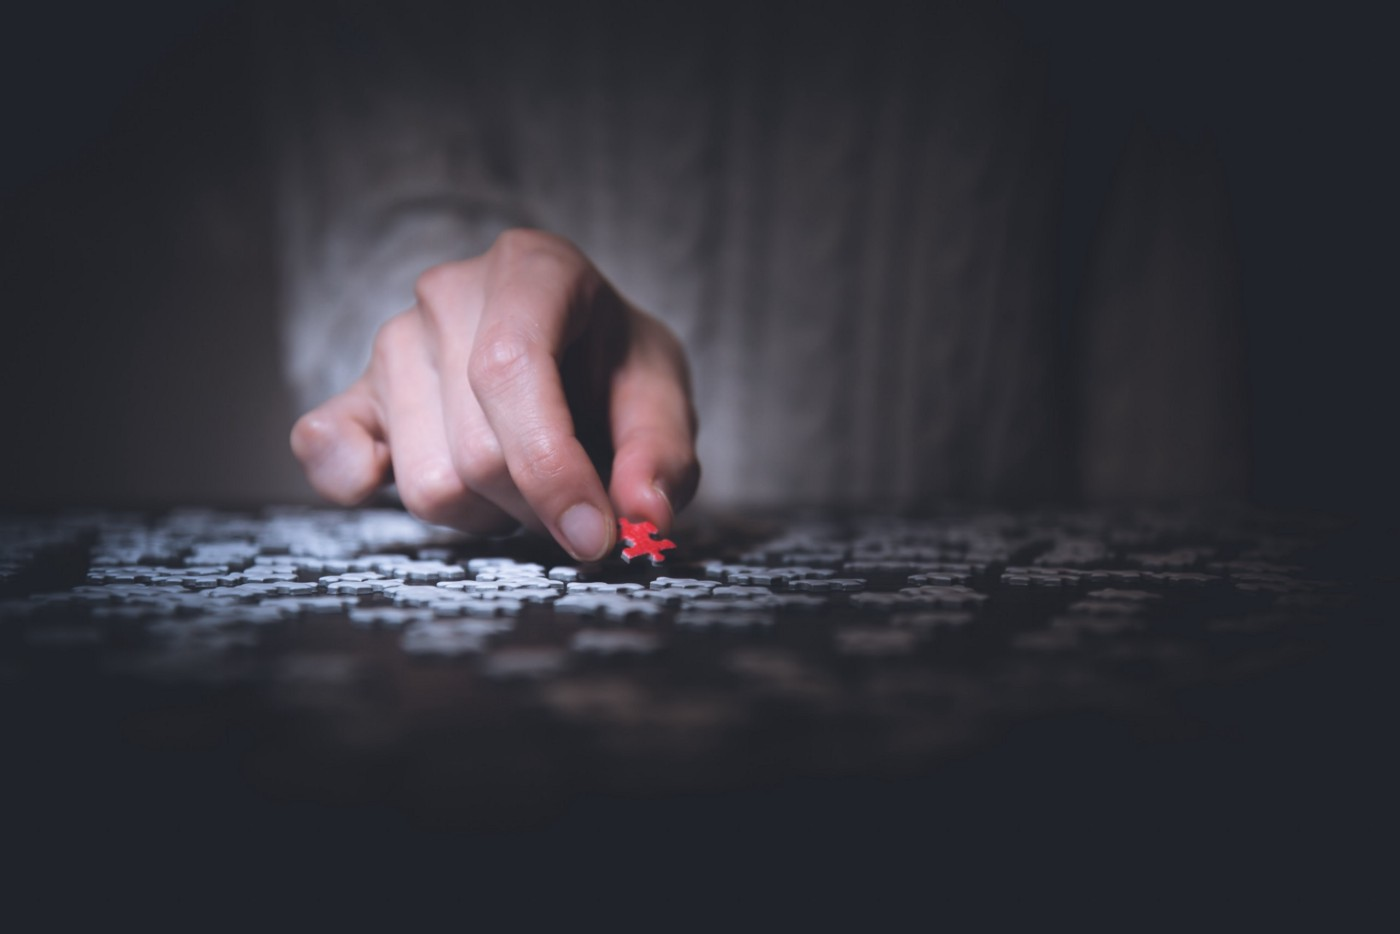 A hand picking one single piece of puzzle from a table full with lots of puzzle pieces.